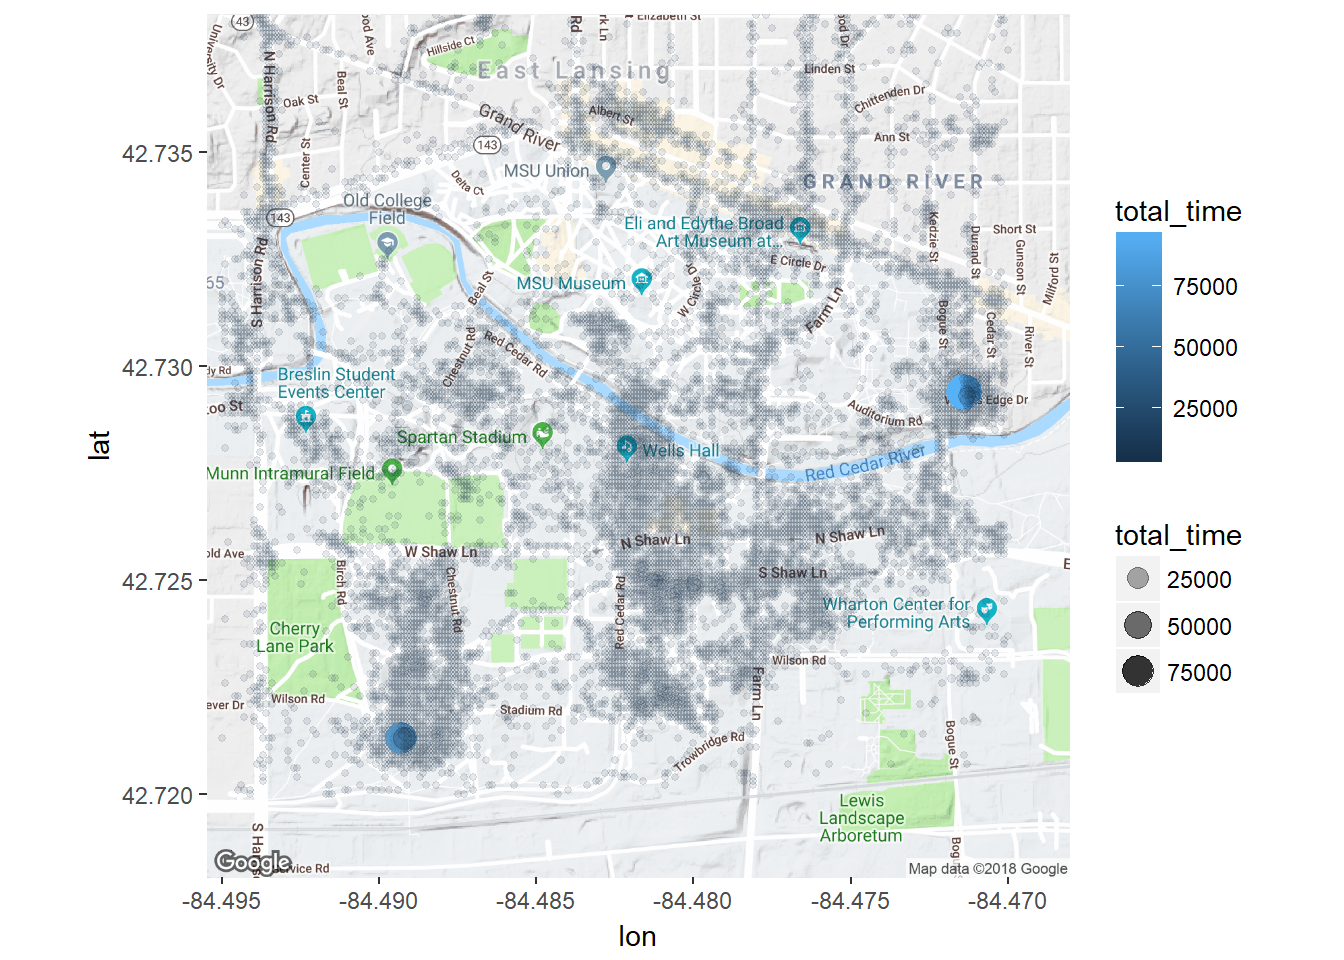 Clustering Google Location History with DBSCAN - Will Renius